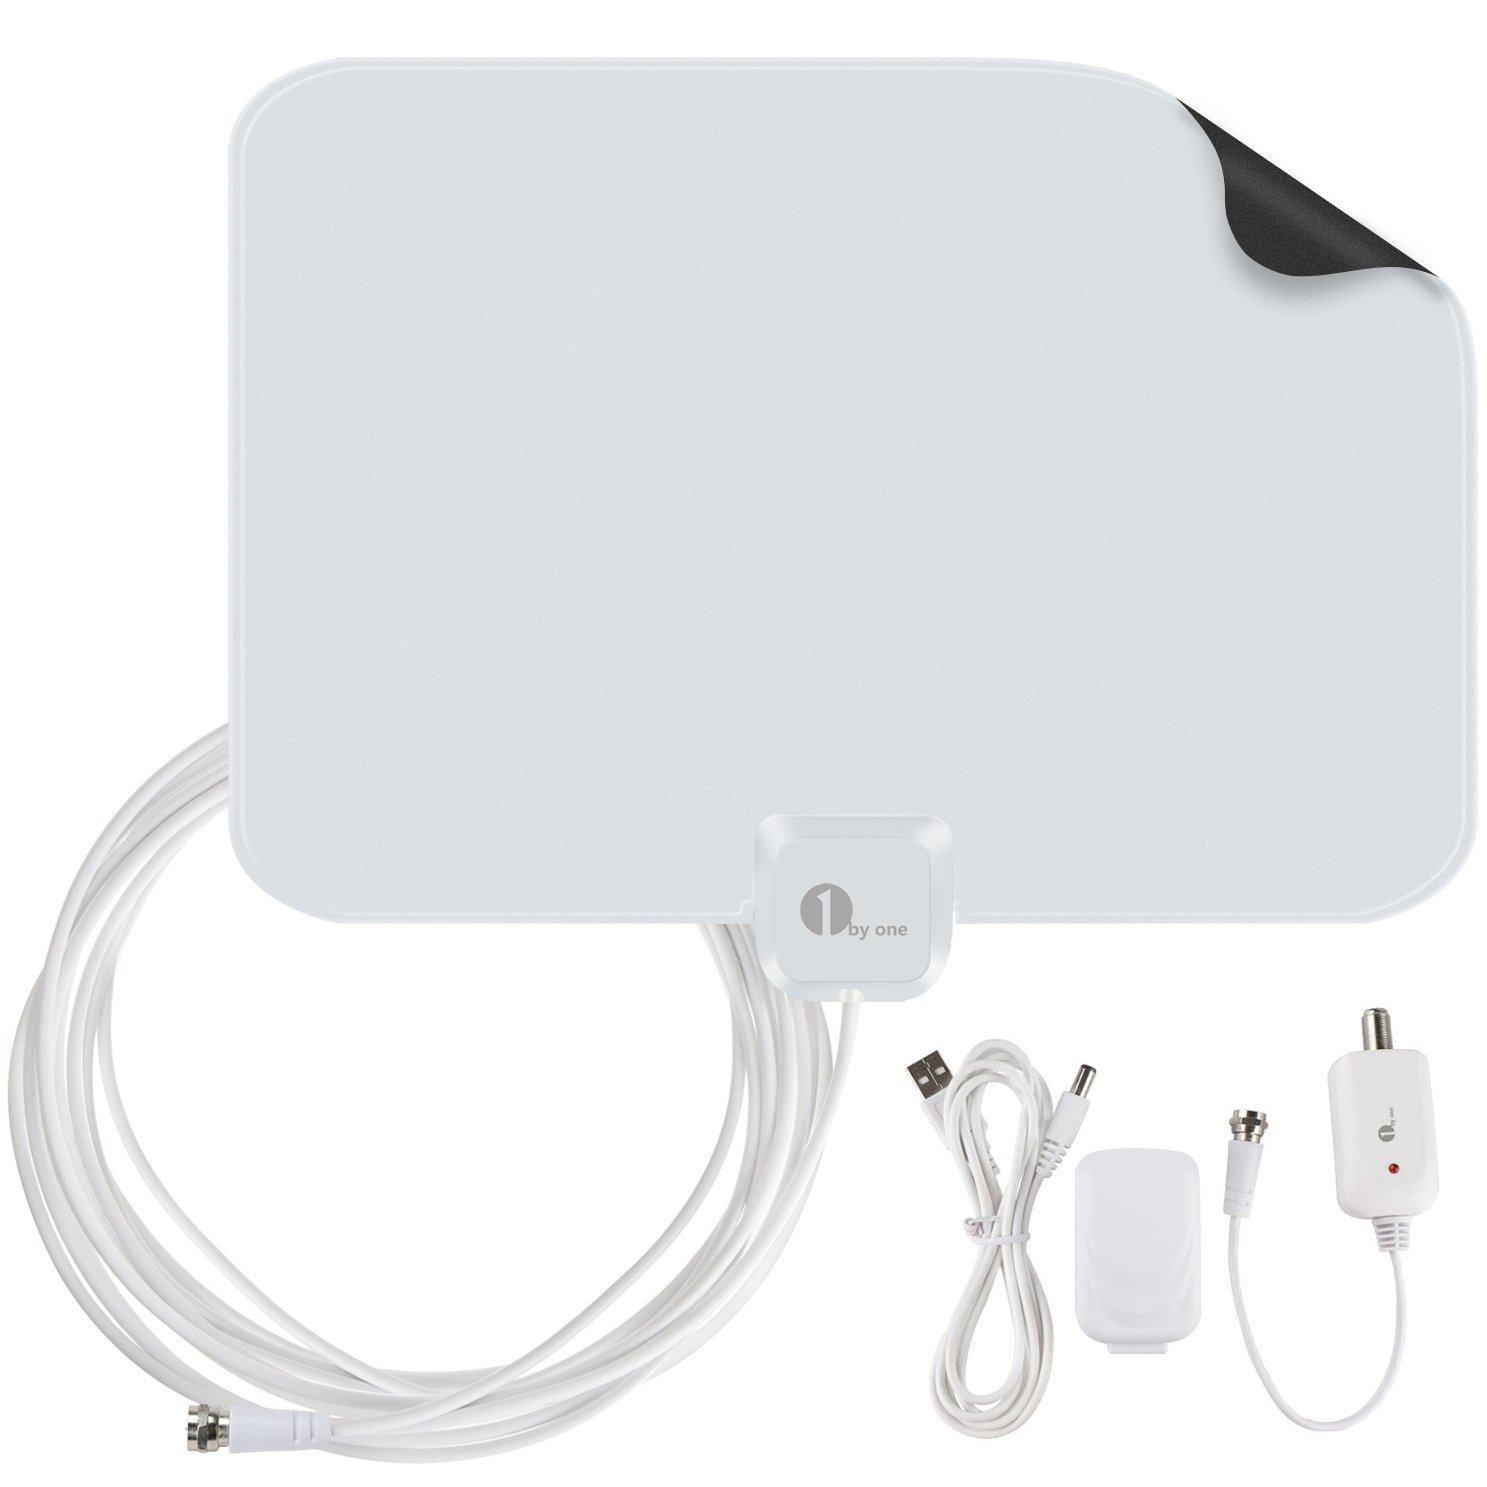 1byone 50 Miles Amplified HDTV Antenna with USB Power Supply and 20 Feet Coaxial Cable - White/Black by 1byone